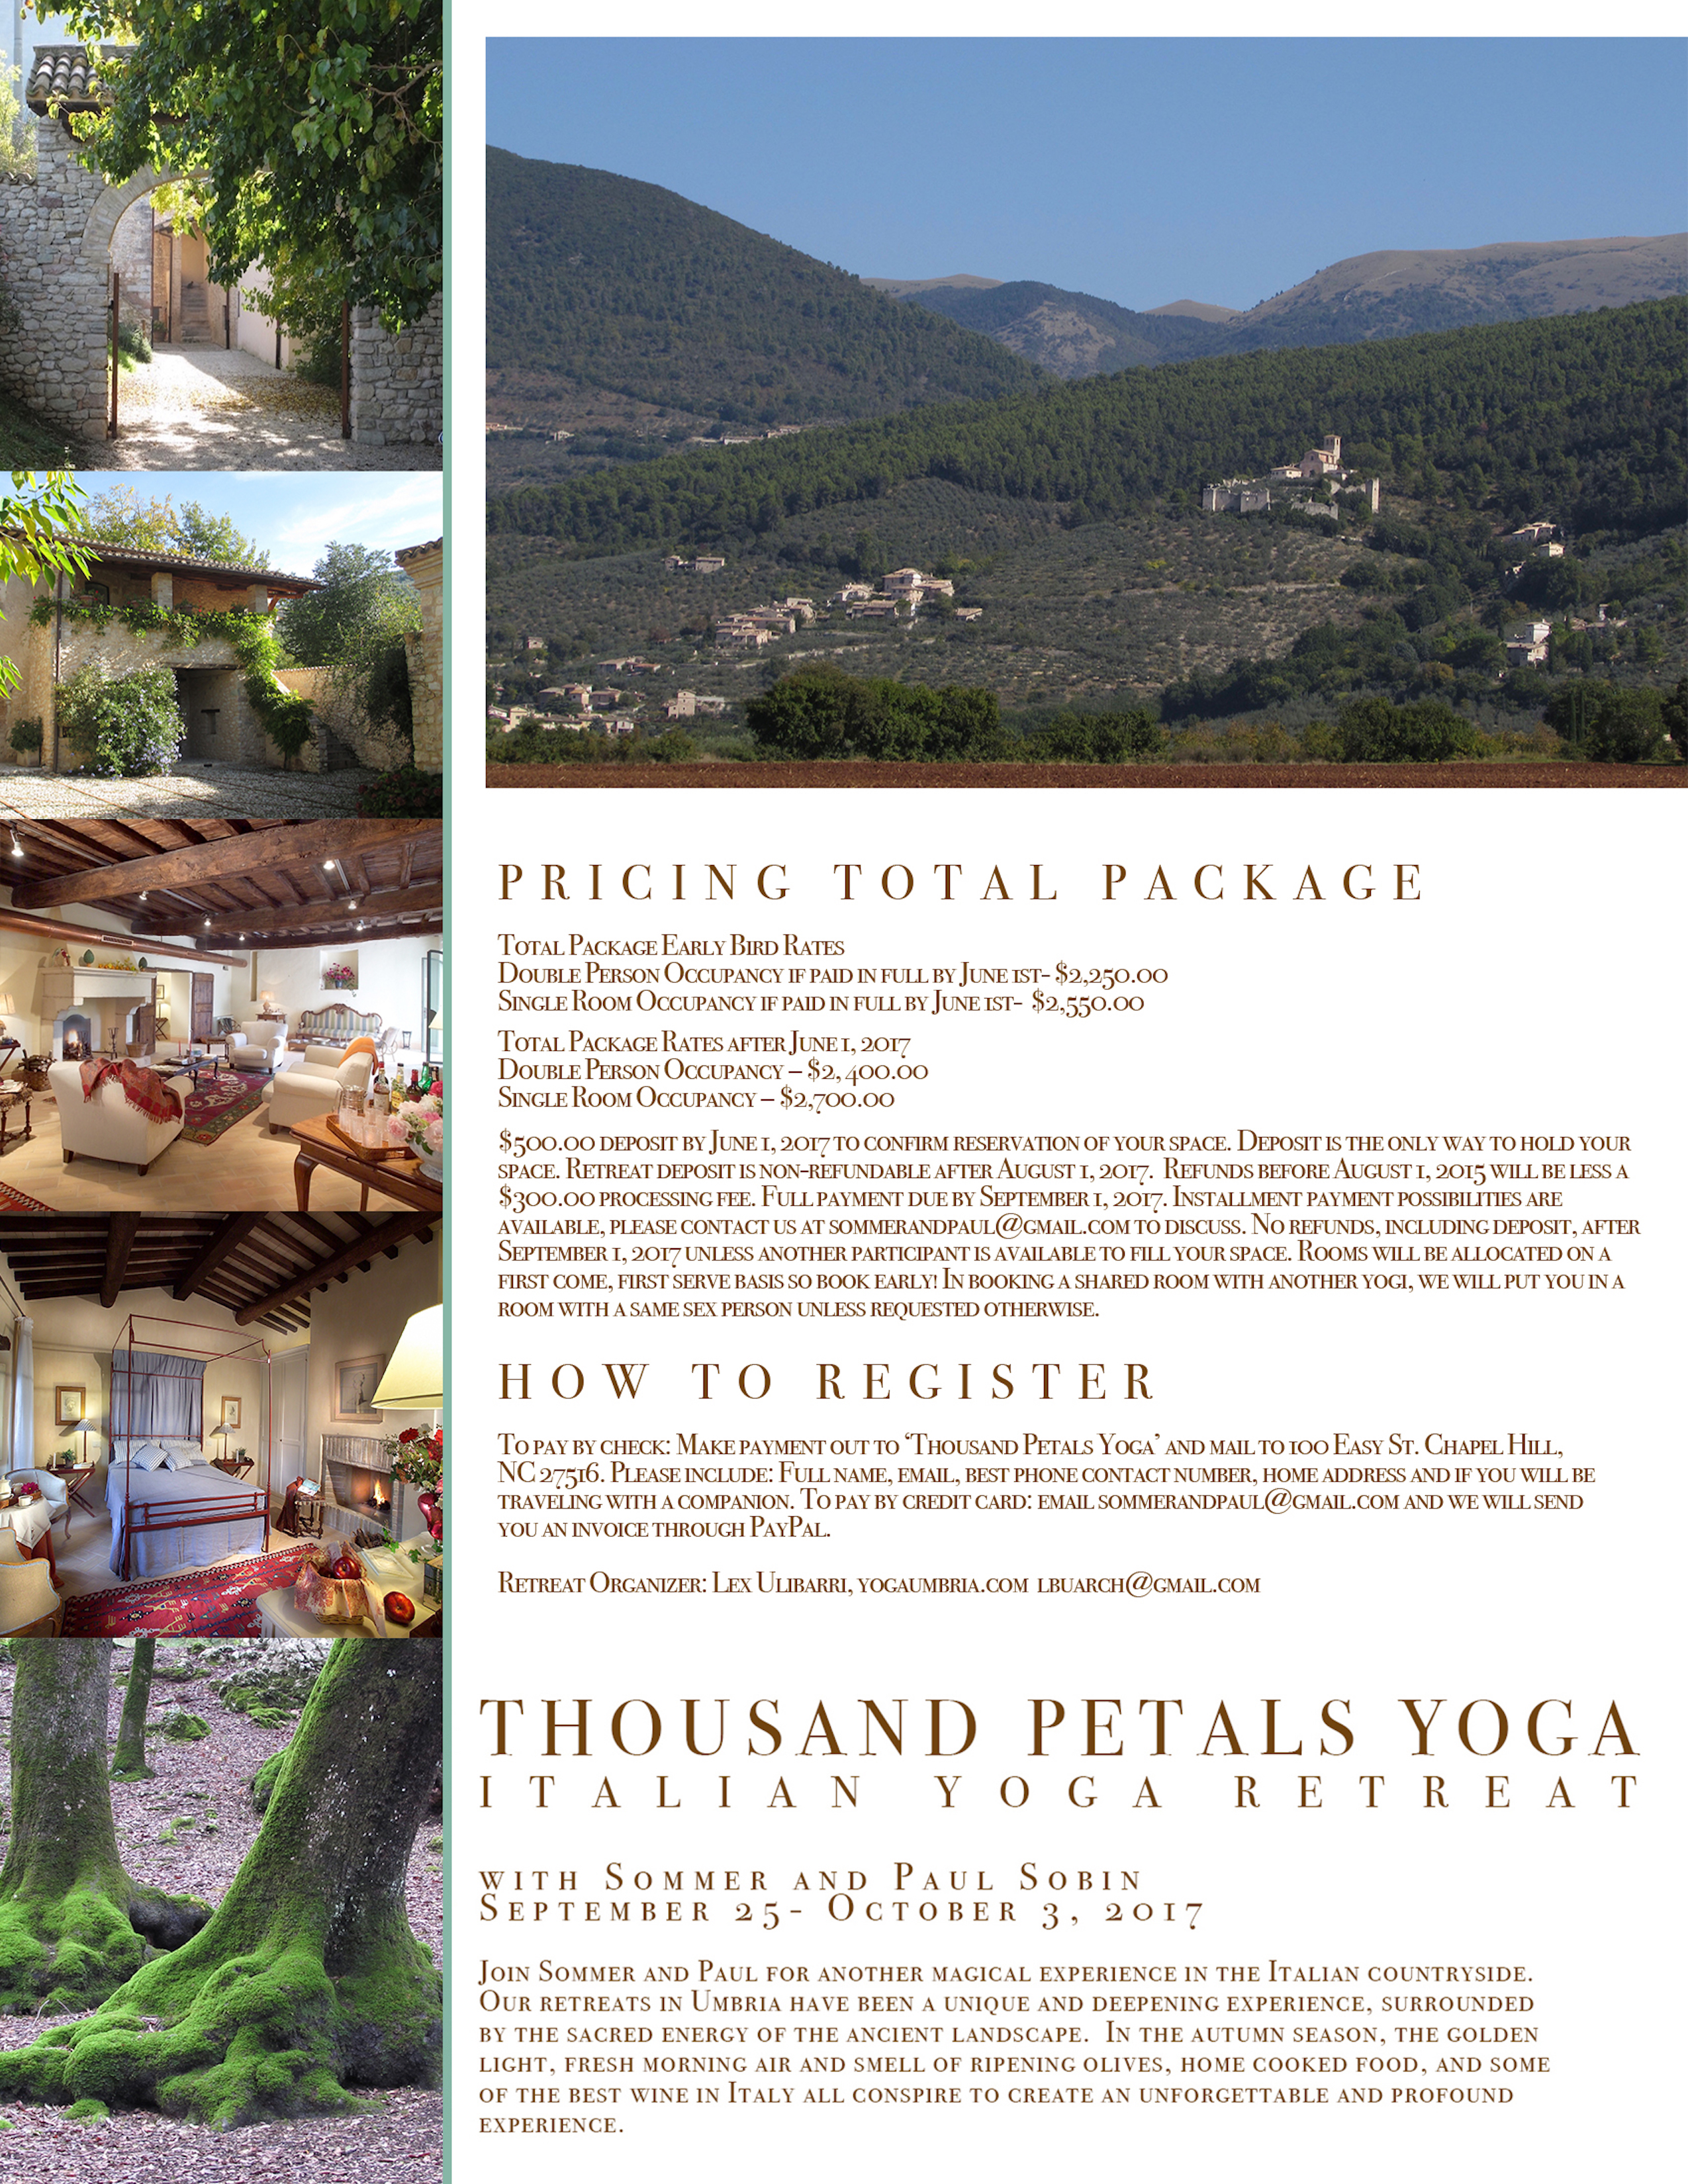 Thousand Petals Italian Yoga Retreat with Sommer and Paul